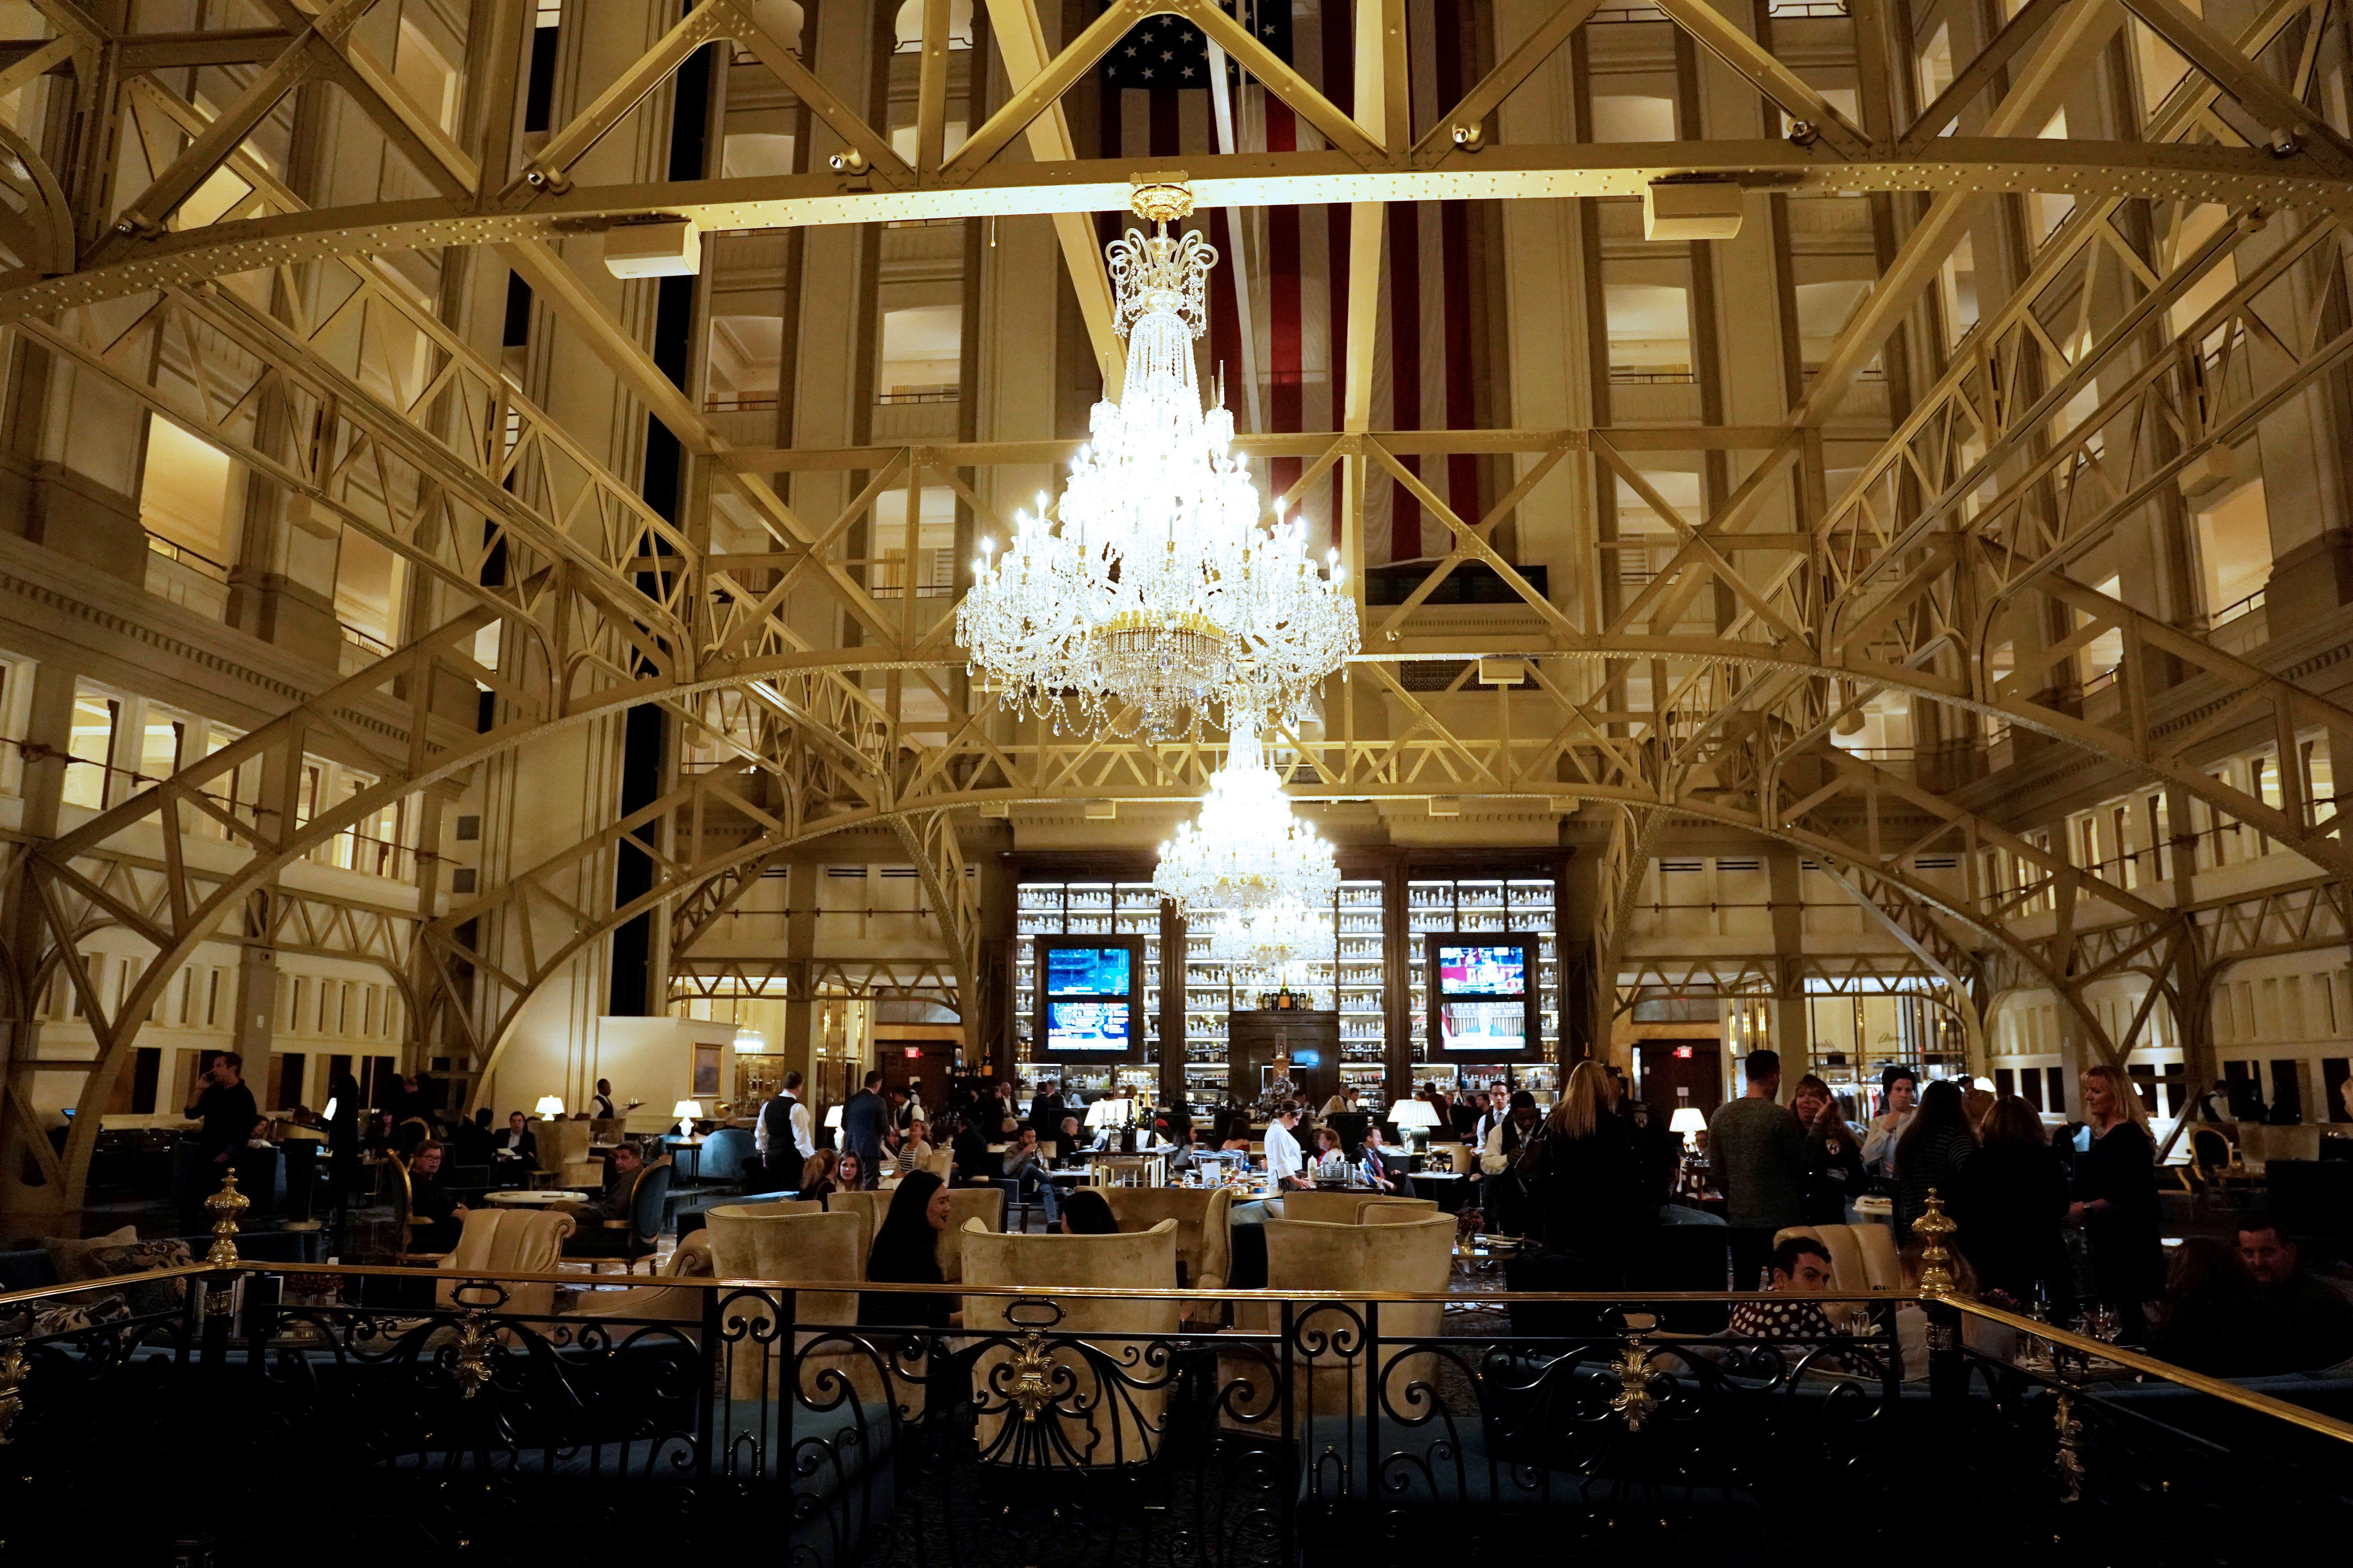 The lobby of Trump International Hotel, where U.S. President Donald Trump is hosting a dinner with supporters, in Washington, U.S., October 25, 2018. REUTERS/Al Drago